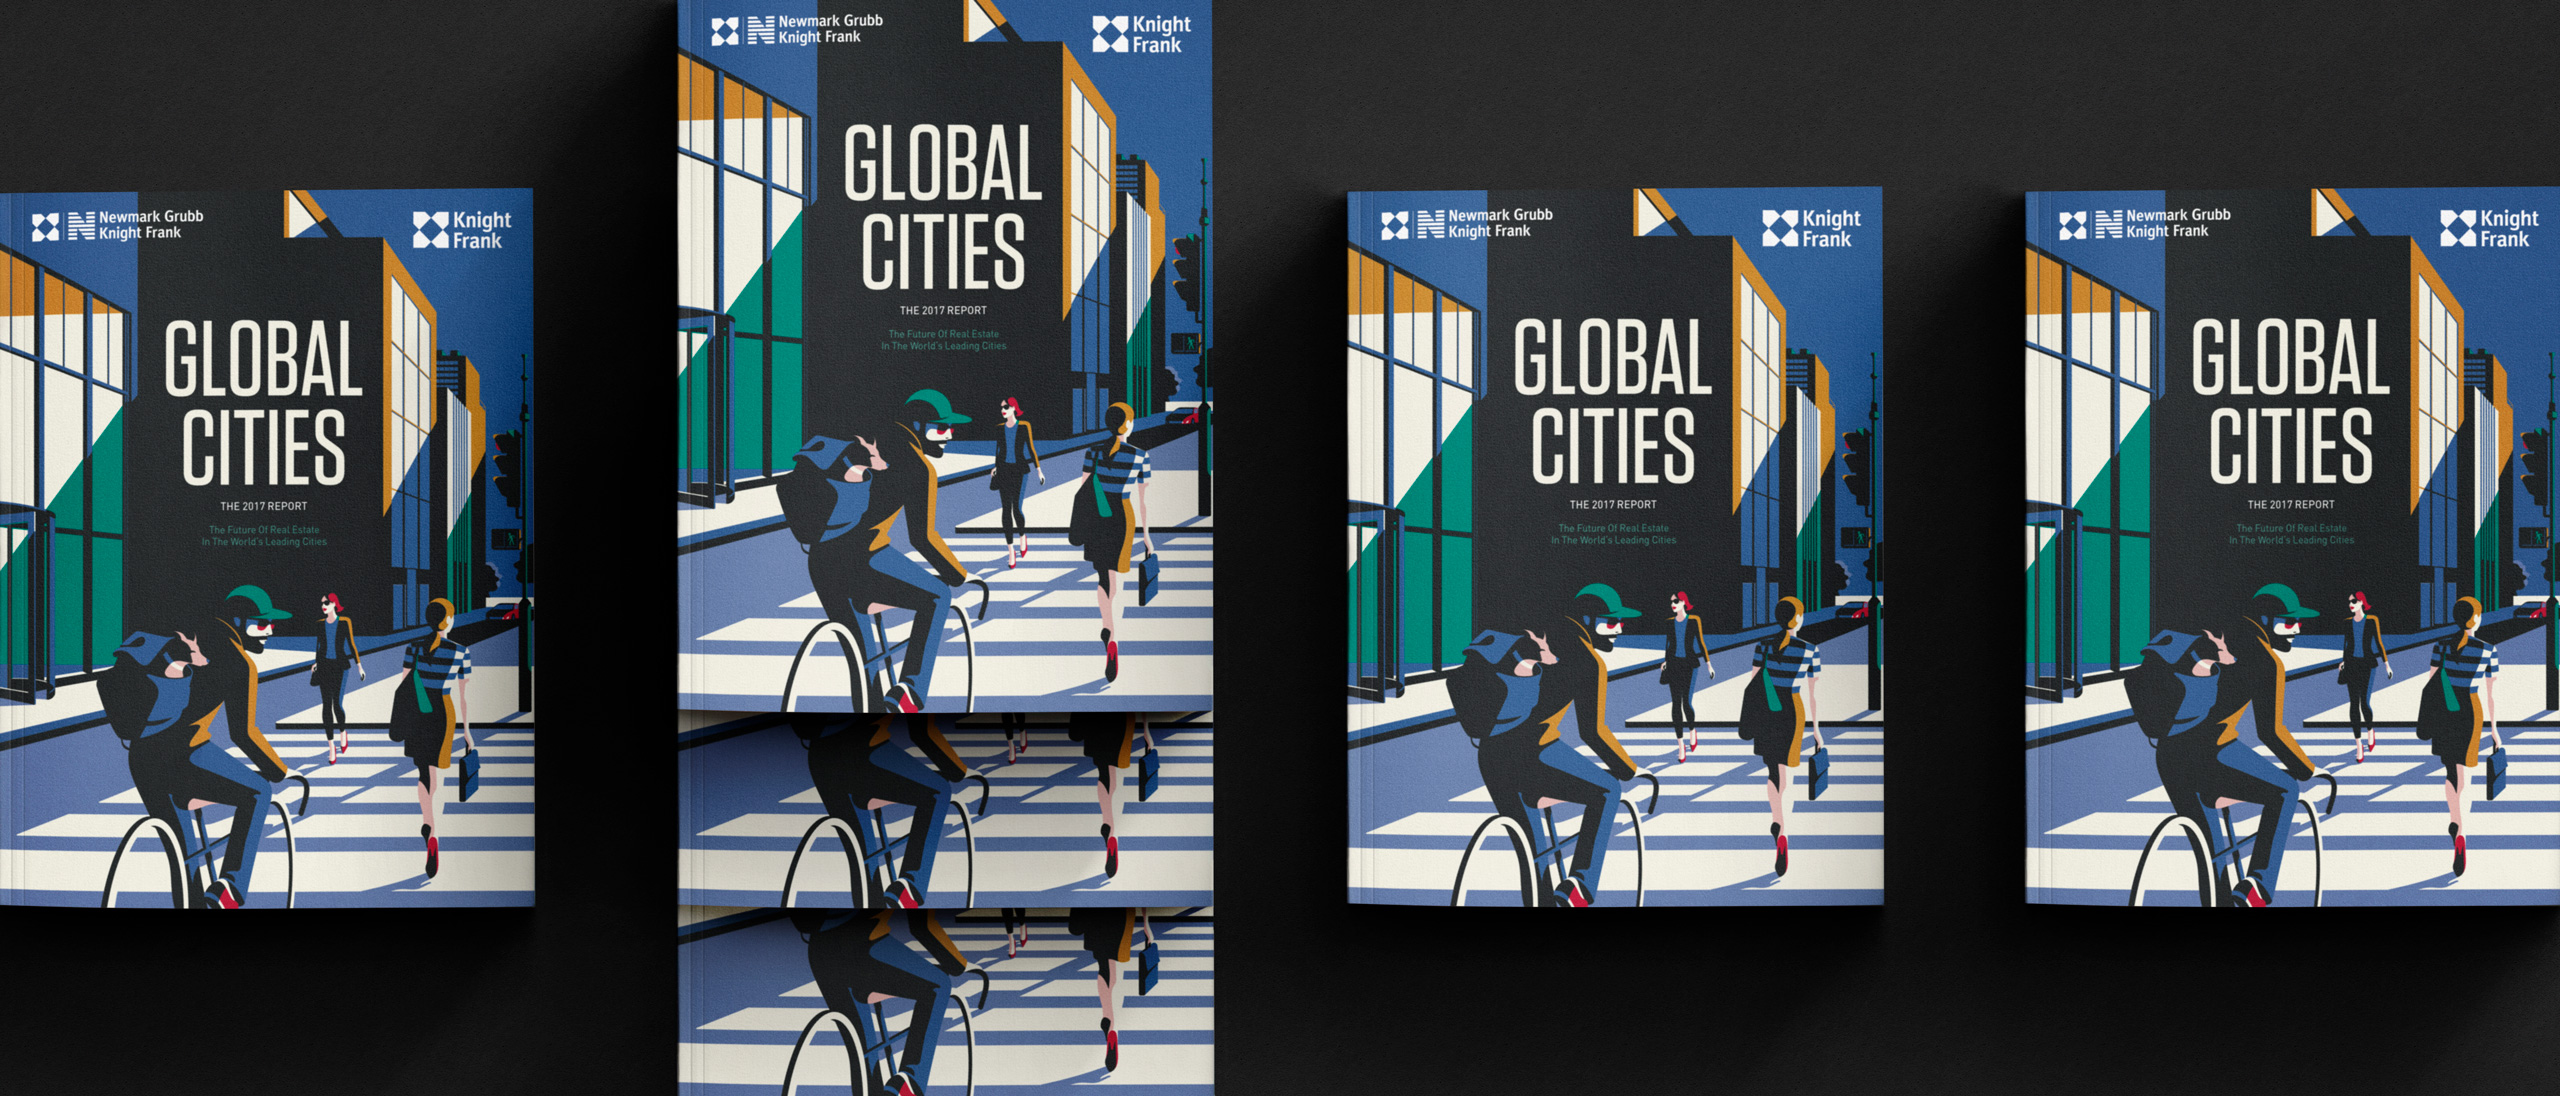 Knight-Frank-Global-Cities-2017-COVERS-2